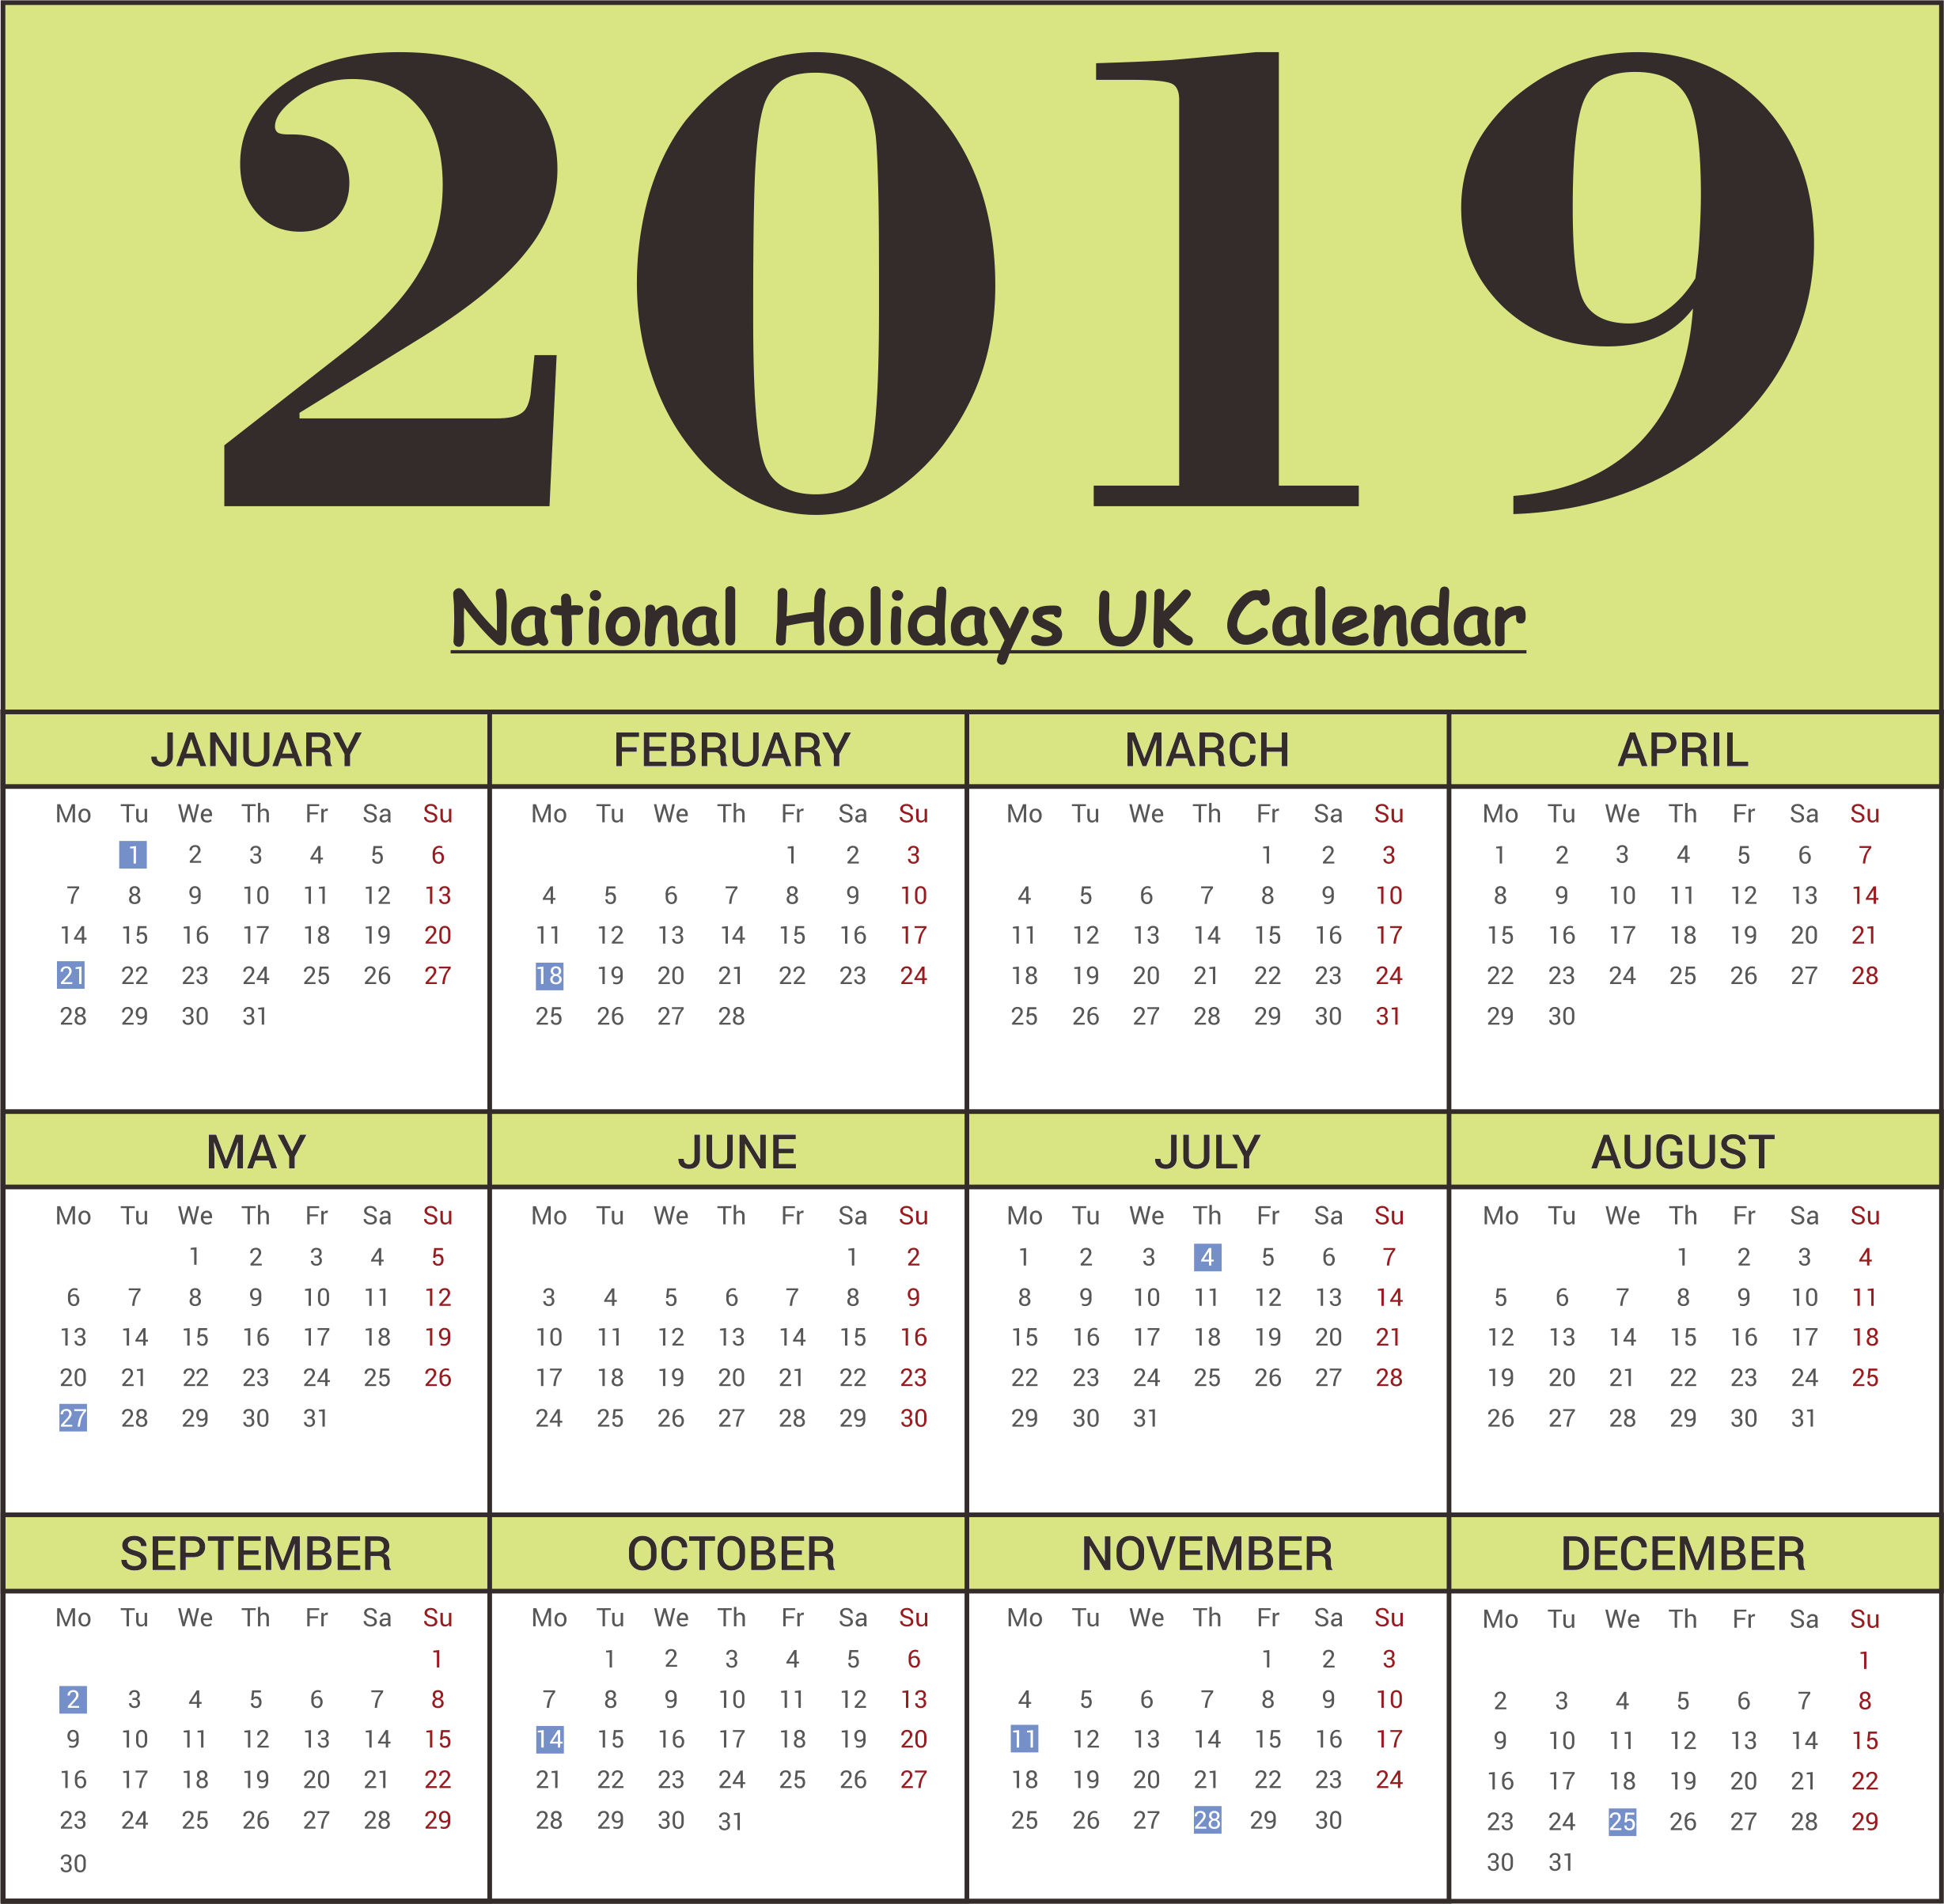 UK National Holidays 2019 Calendar